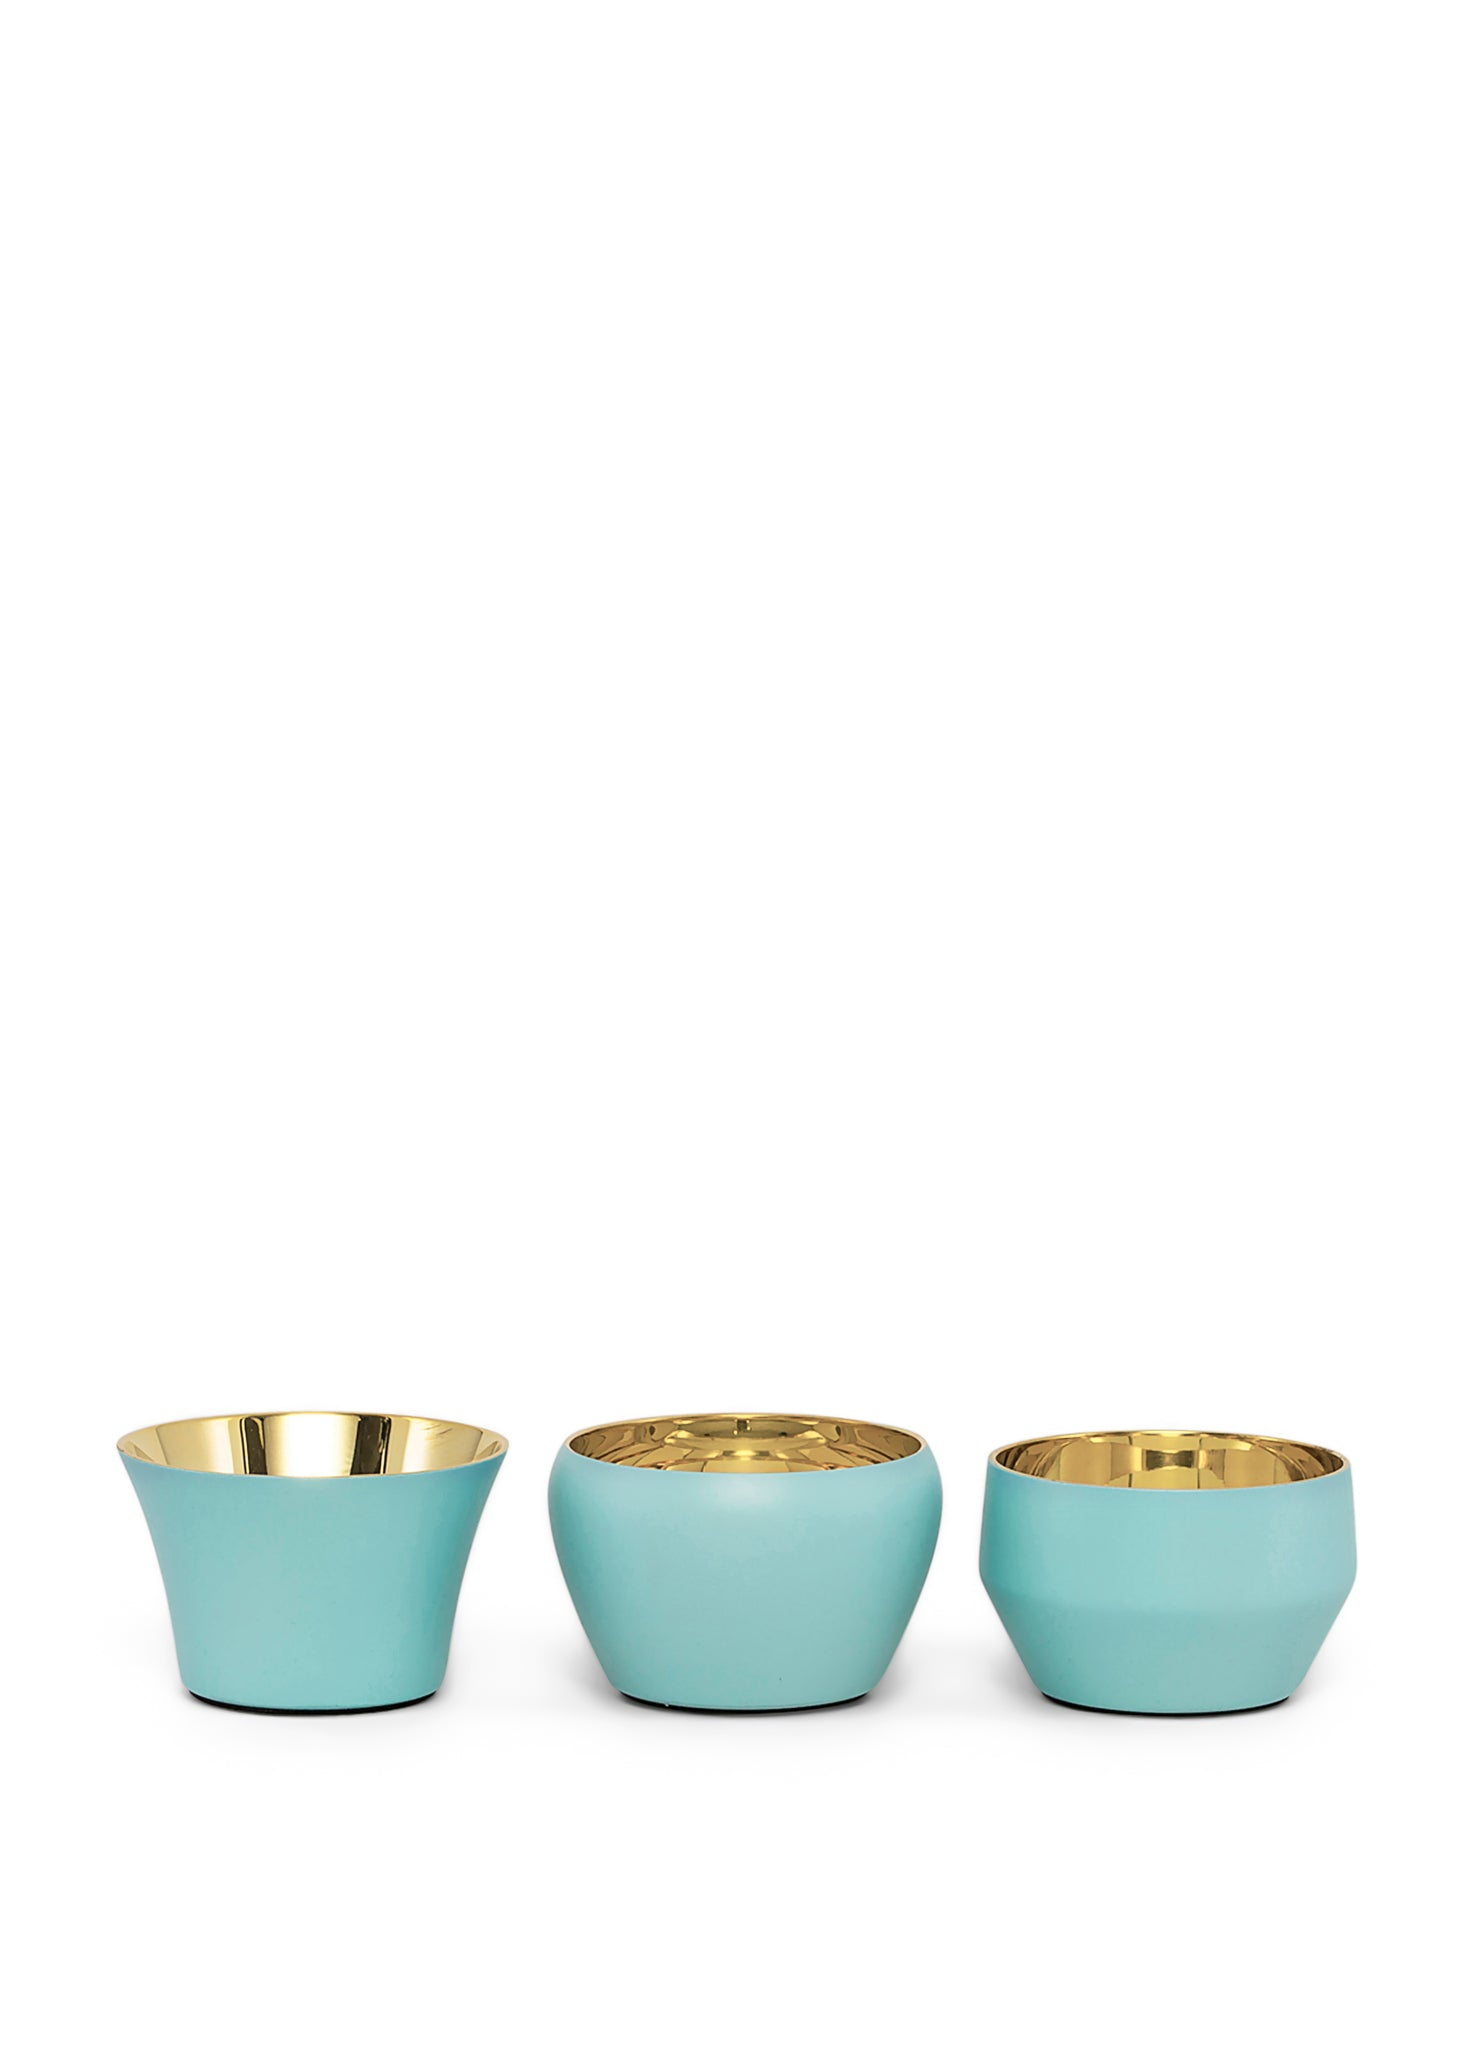 Skultuna Set of 3 Kin Candleholders in Azure